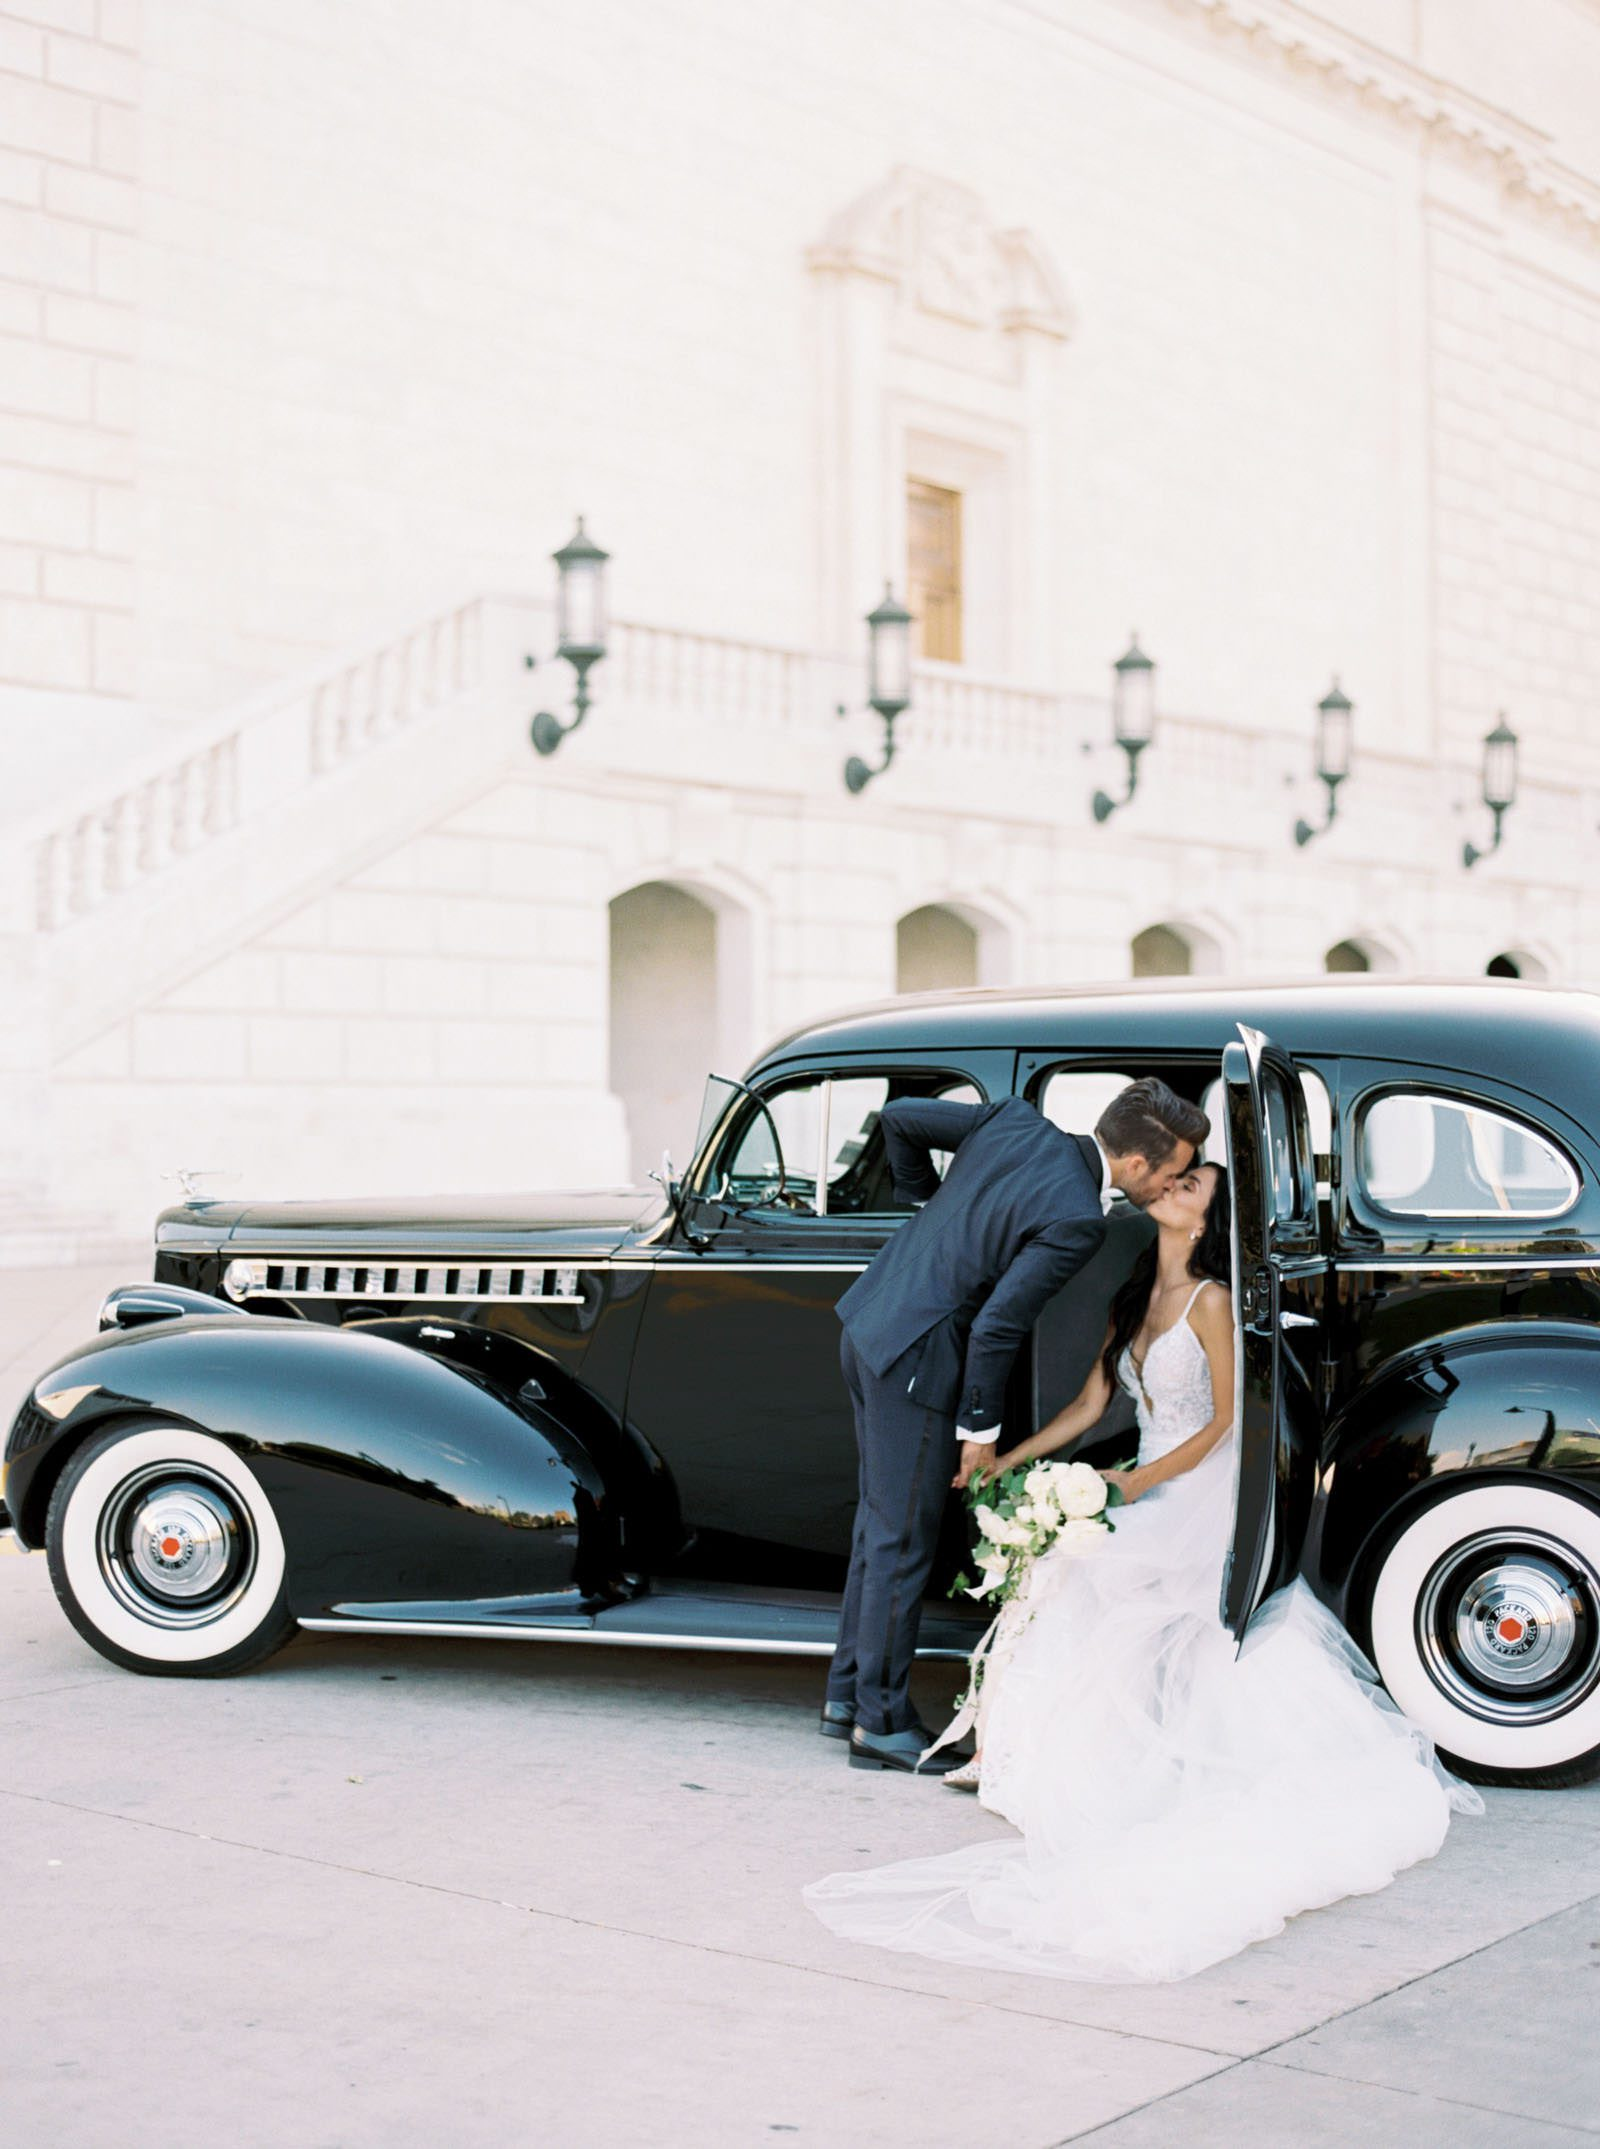 Wedding photos at the Detroit institute of arts with classic car